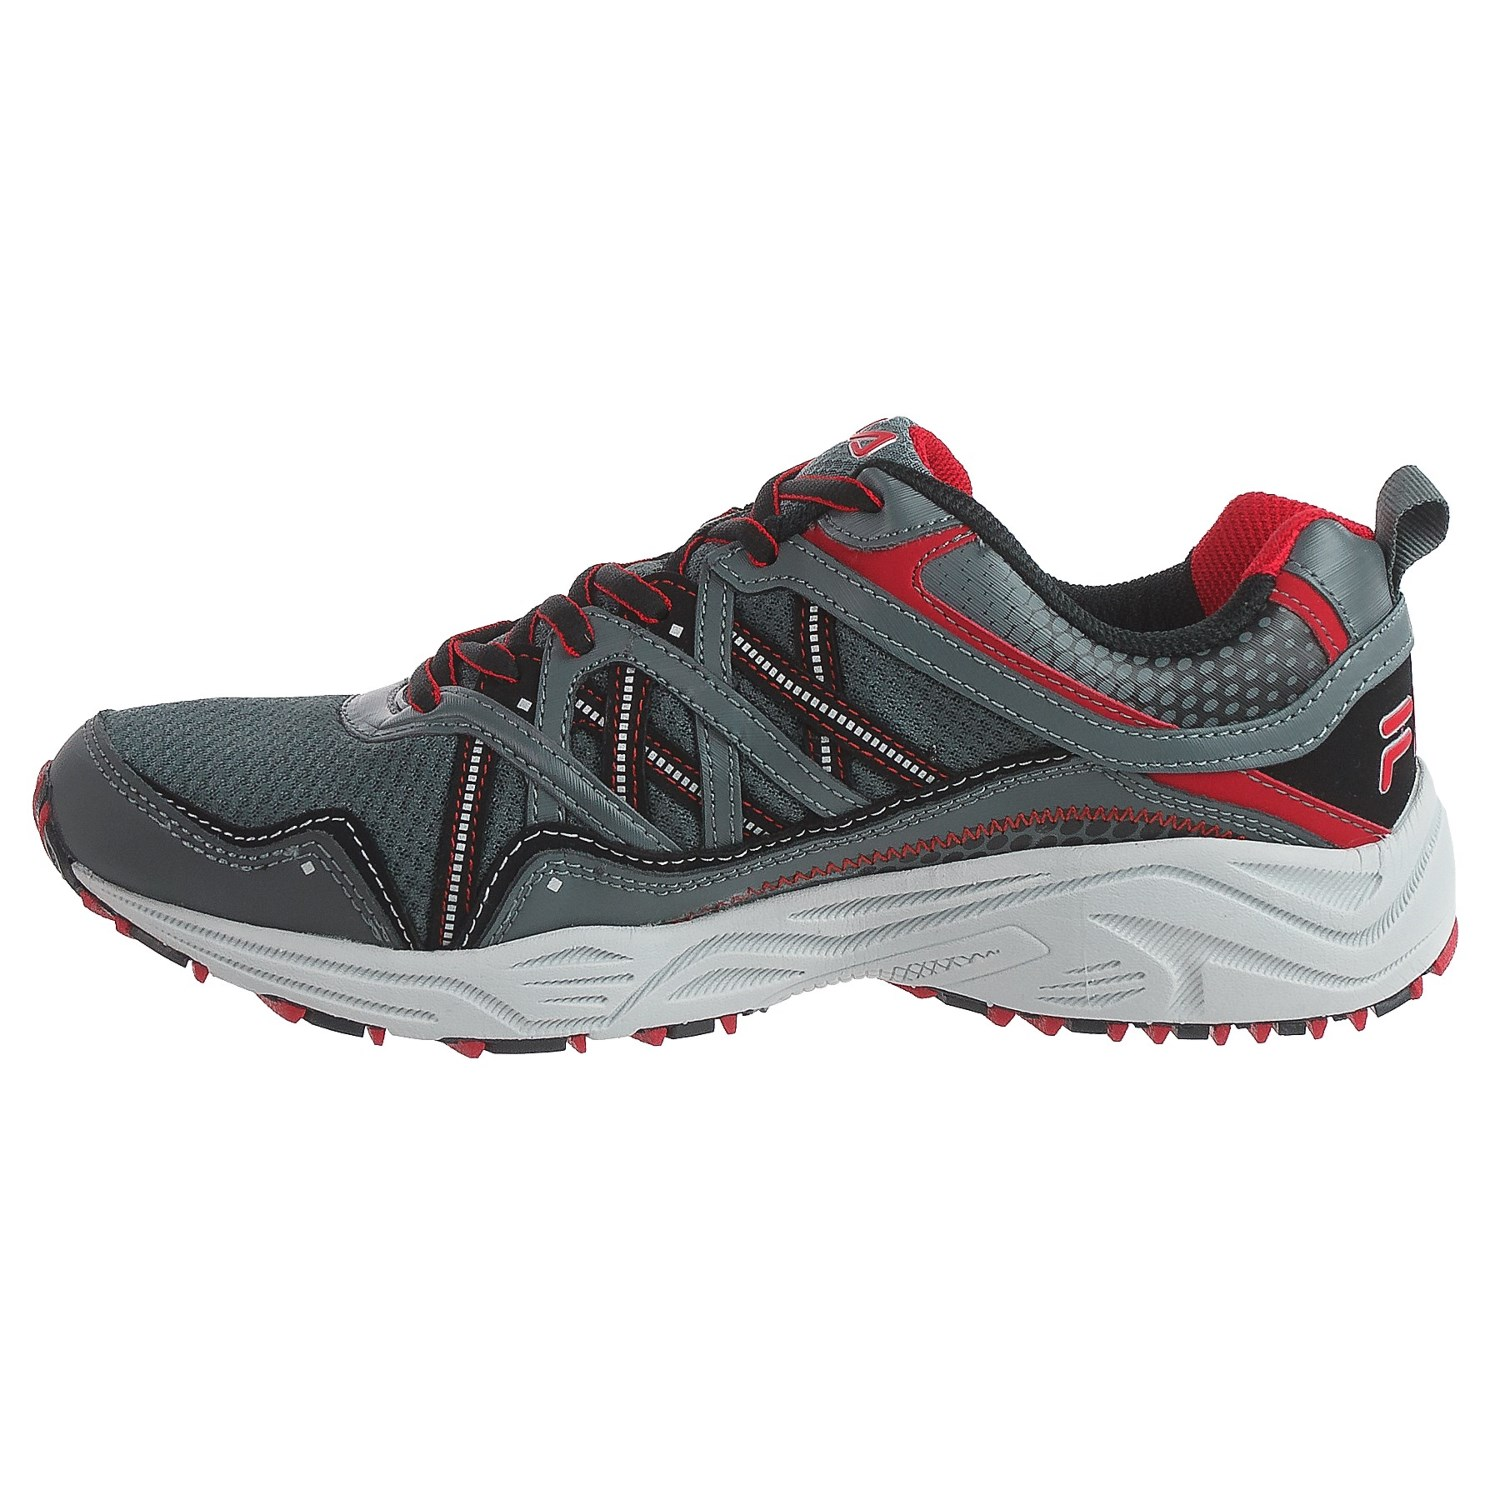 Best Running Shoes For Women Motion Control